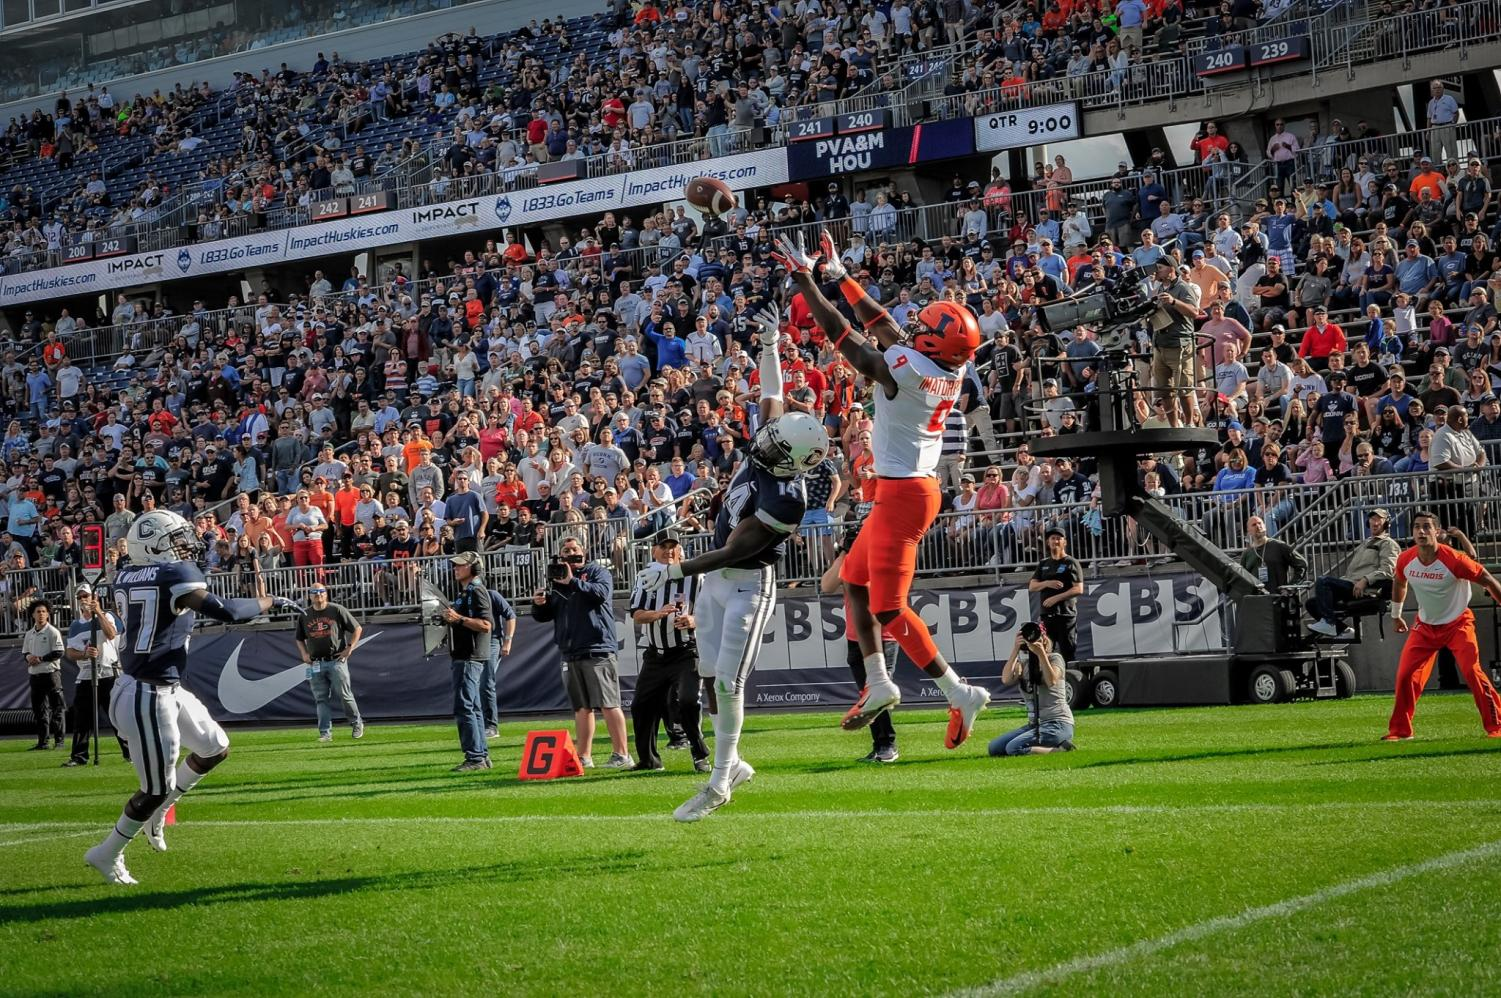 Illini wide receiver Josh Imatorbhebhe (9), scores a touchdown vs Connecticut at Rentshler Field. The Illini Won 31-23.